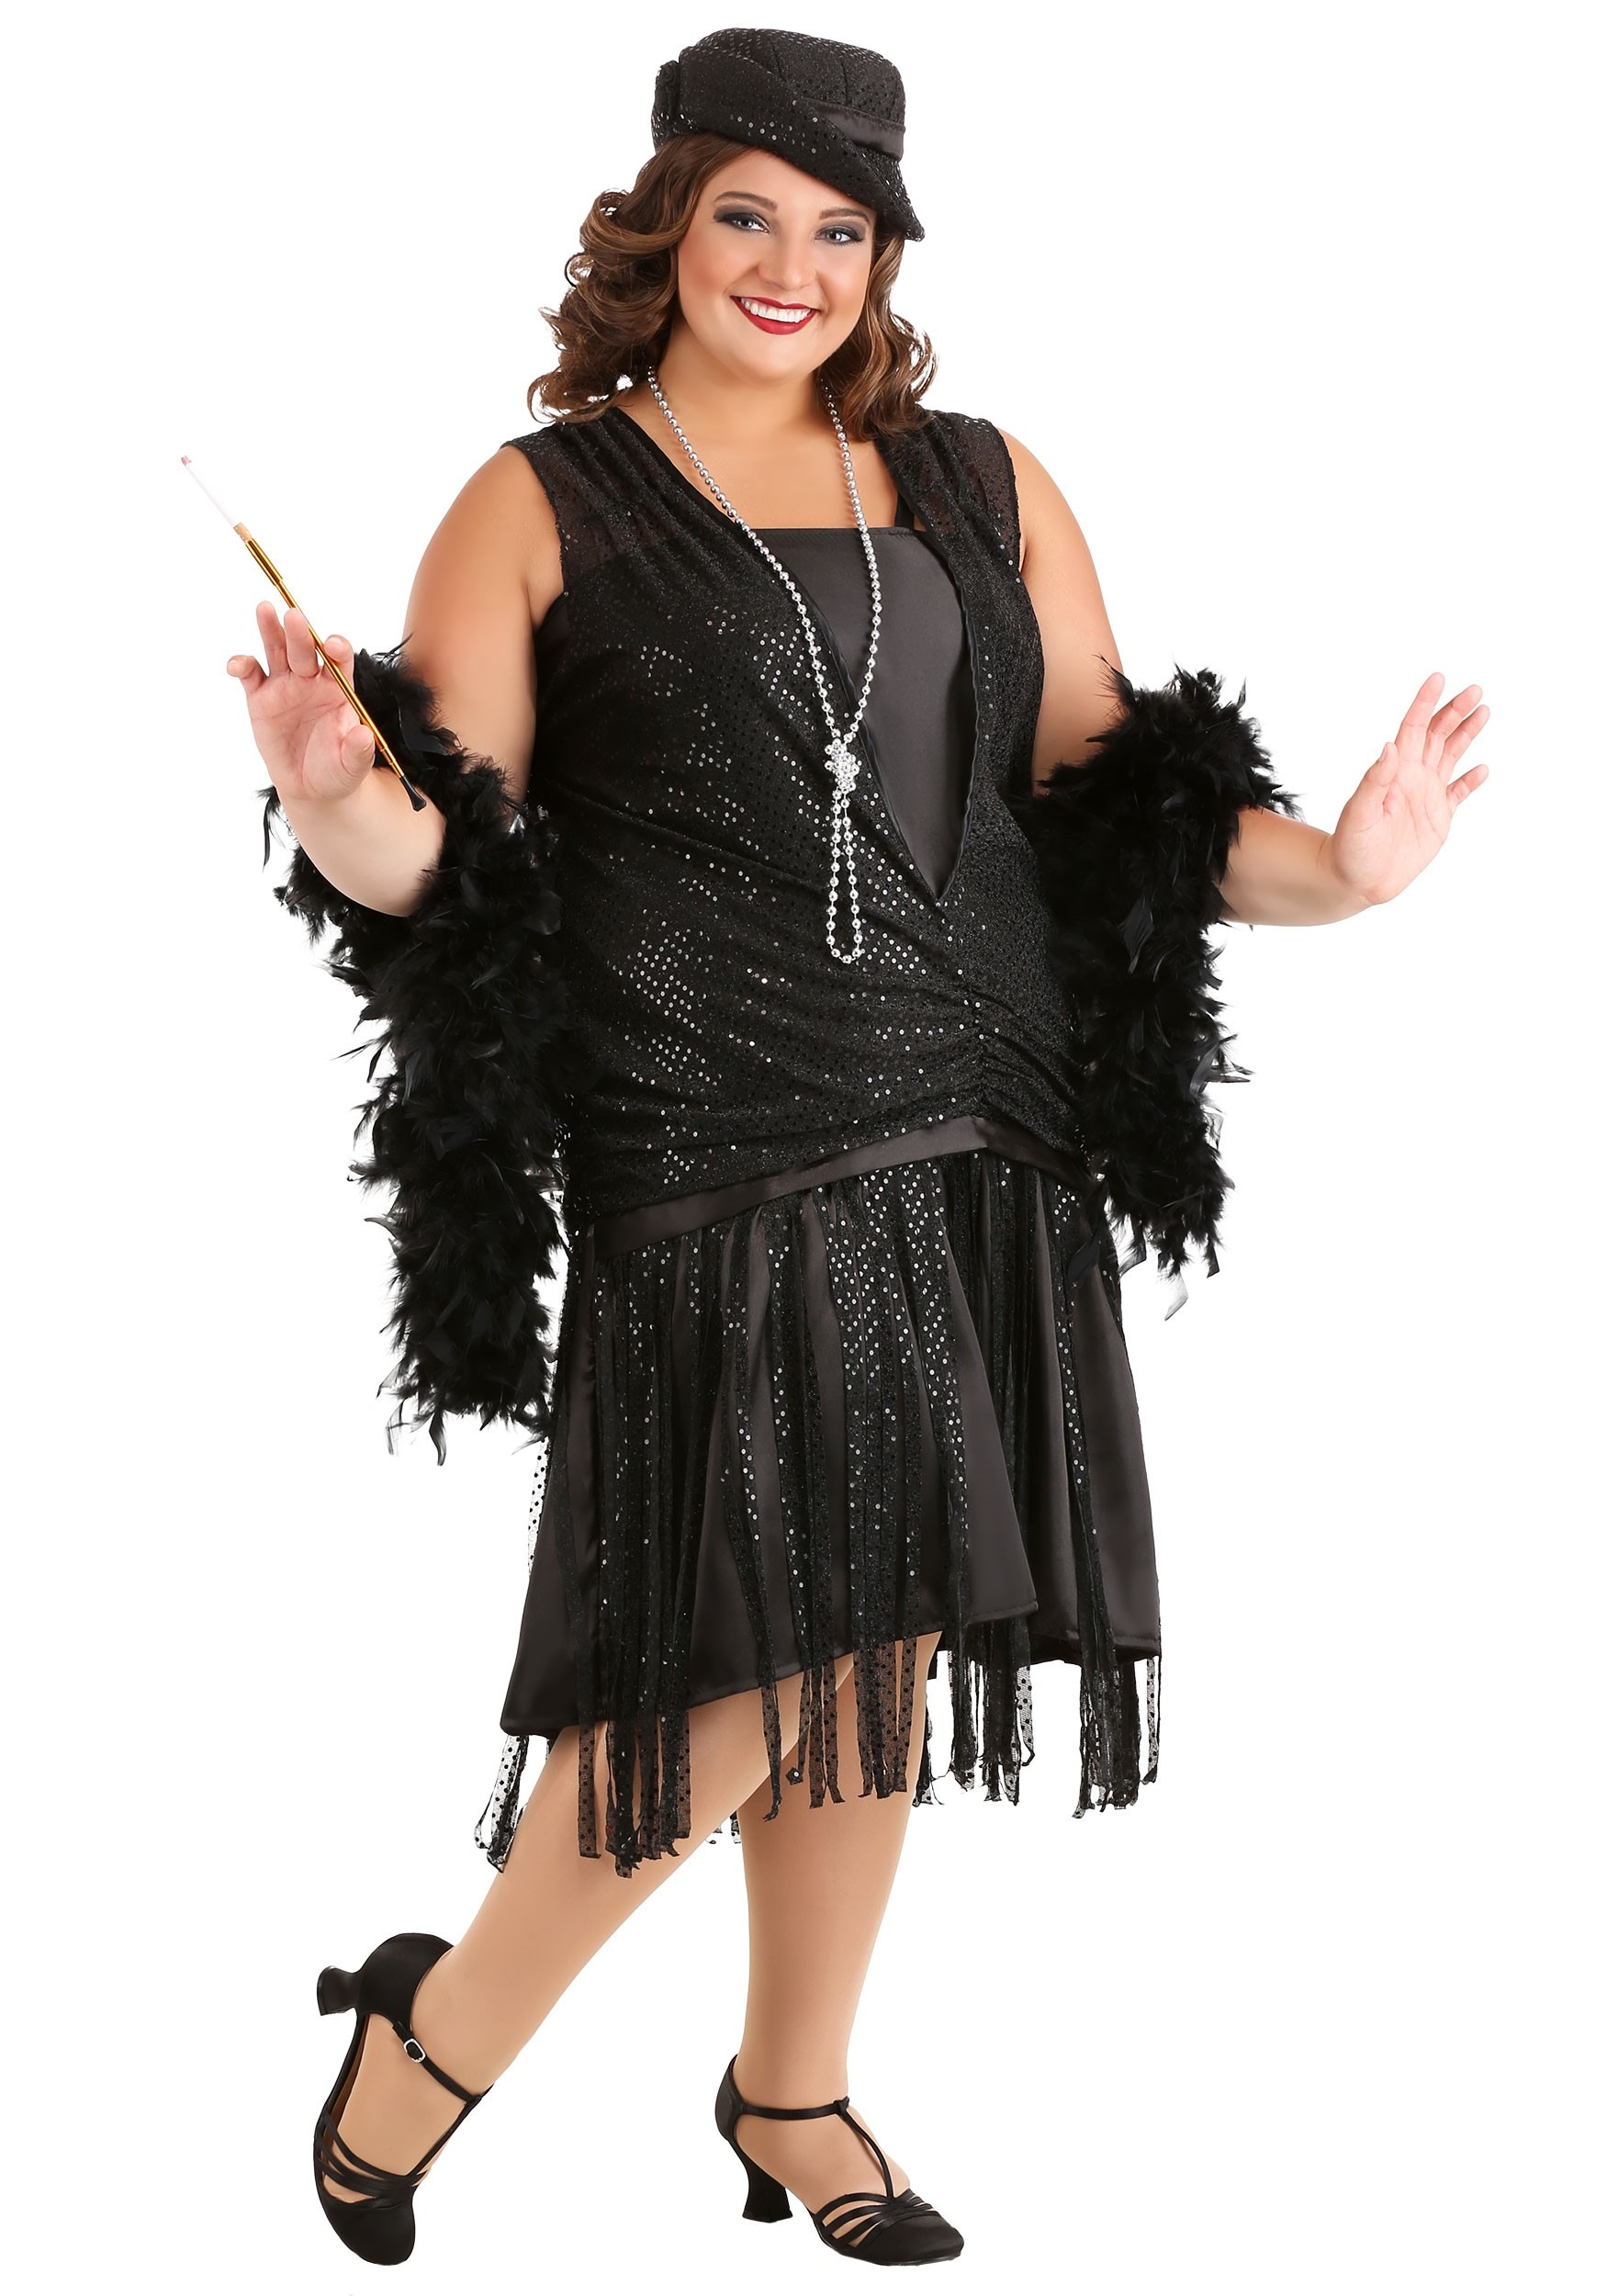 b833e3cacb5 Black Jazz Flapper Plus Size Costume for Women